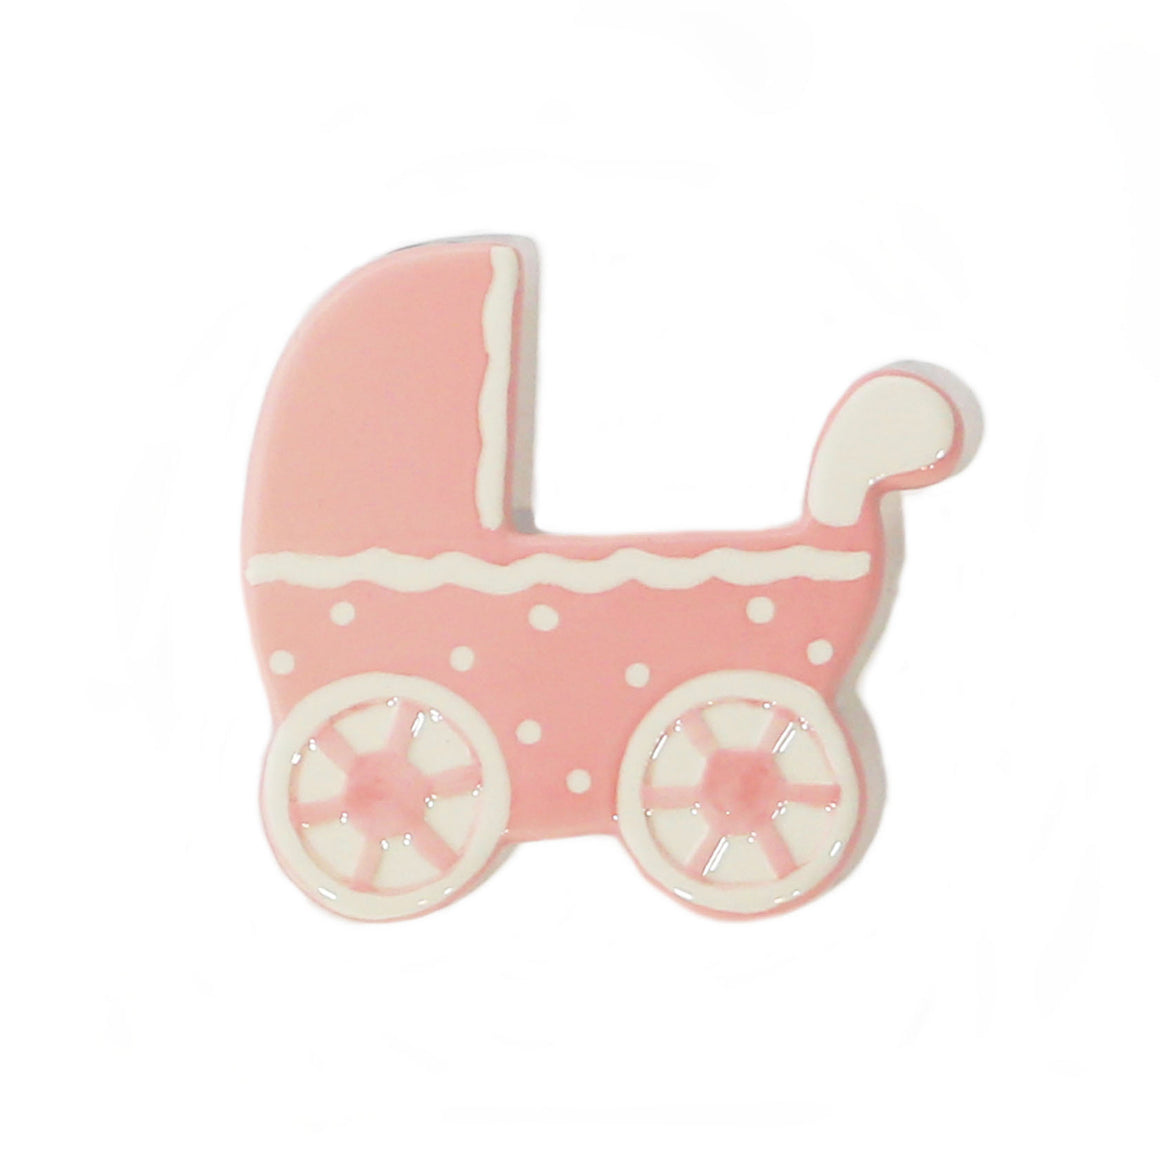 Pink Baby Carriage Hand-Painted Ceramic Magnetic Topper